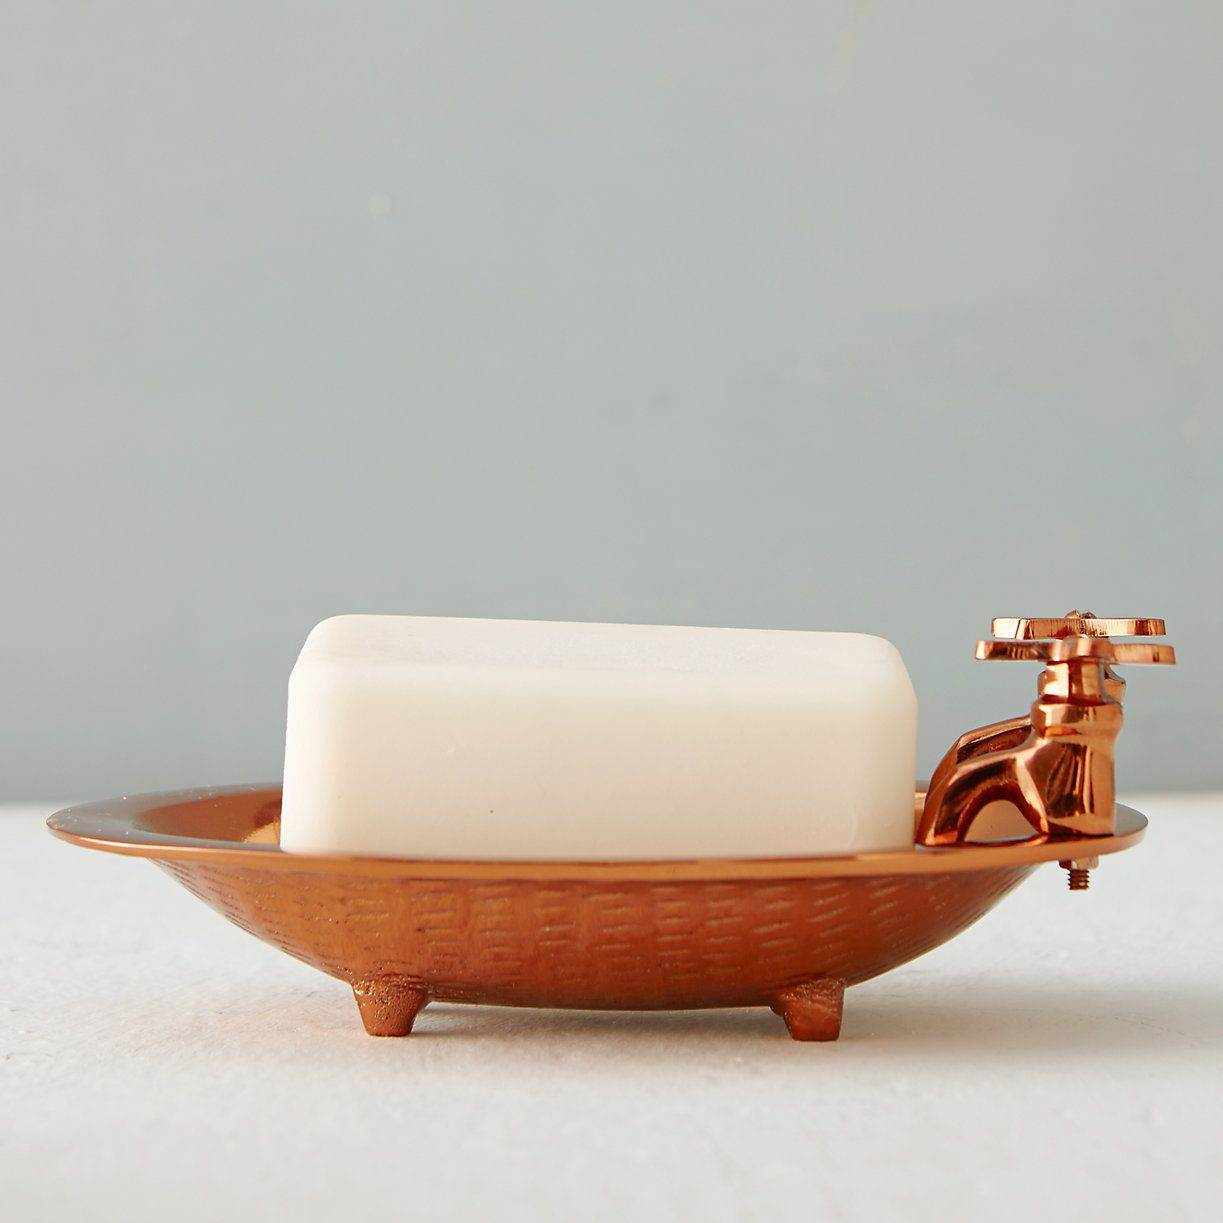 Copper Bathtub Soap Dish Copper Bathtubs Copper Bathroom Accessories Dish Soap